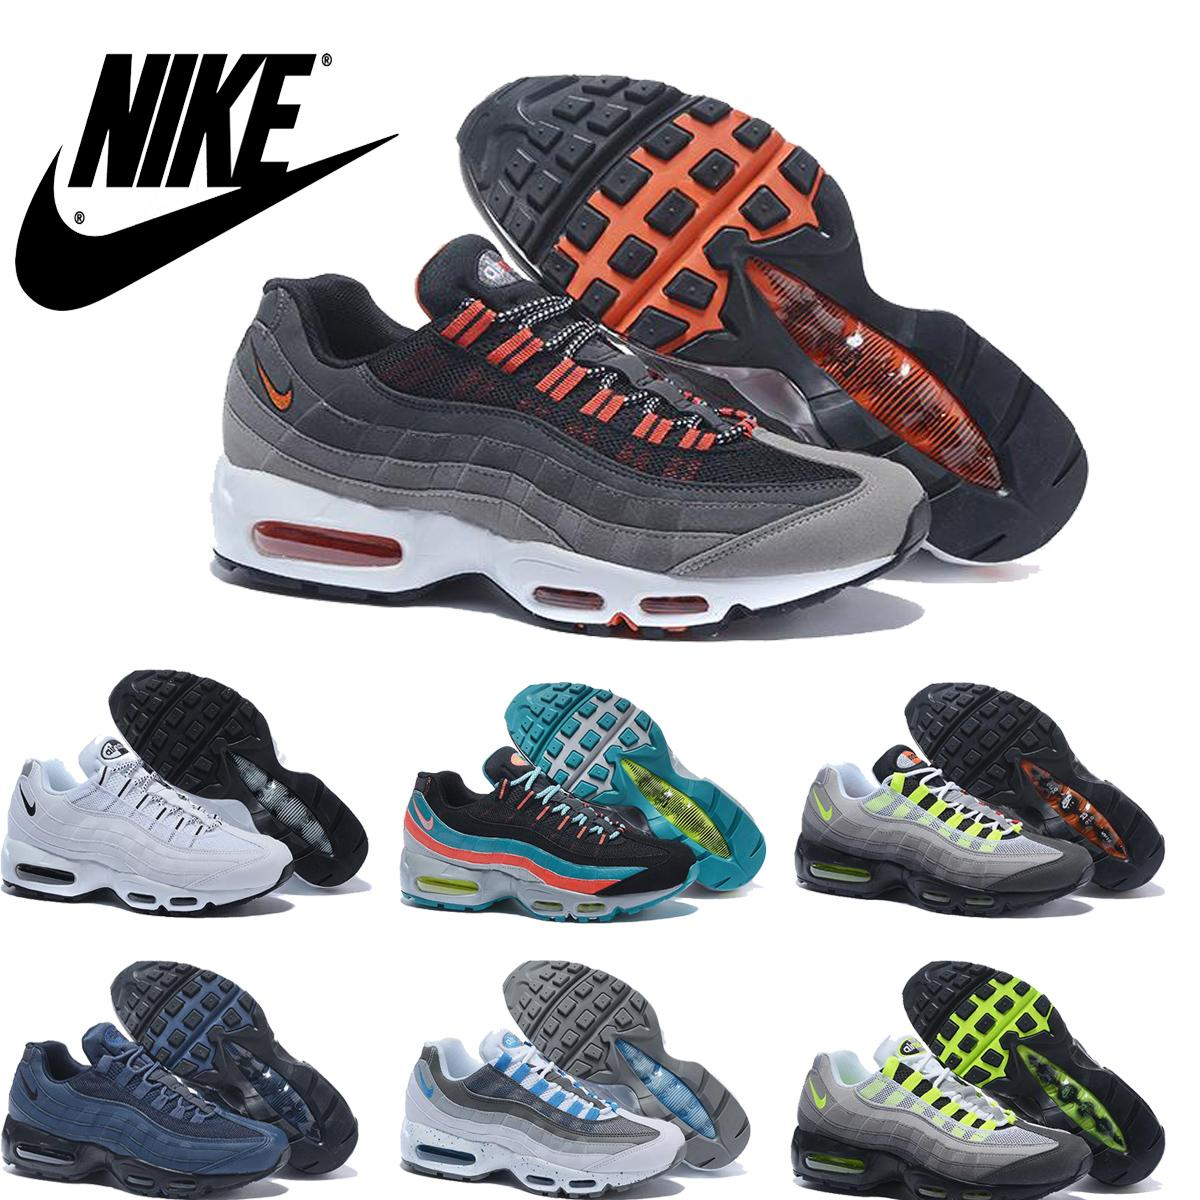 crucero Impresionante túnel  Nike Air Max 95 OG Greedy Retro Mens Running Shoes,Wholesale Original Air  Max95 Maxes Airmax 95 OG Neon Green Black Men Sneakers Running Spikes Track  Shoes From Bestsportcentre, $93.27| DHgate.Com